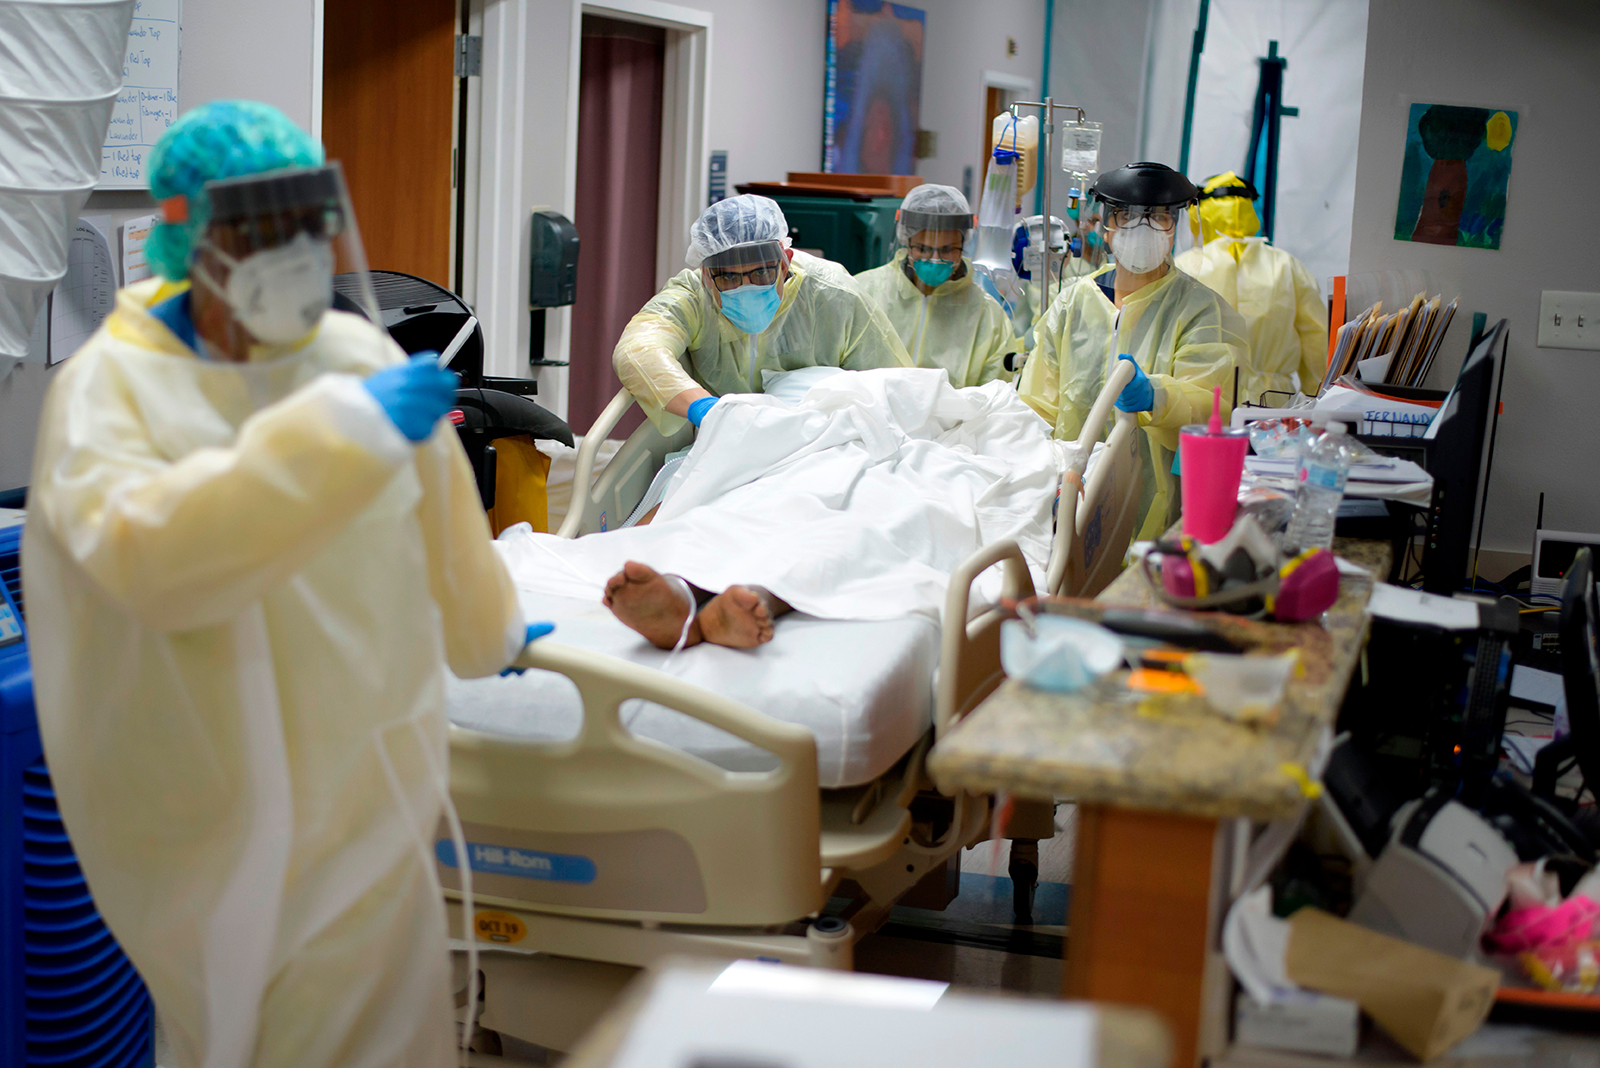 Healthcare workers move a patient in the Covid-19 Unit at United Memorial Medical Center in Houston on July 2.